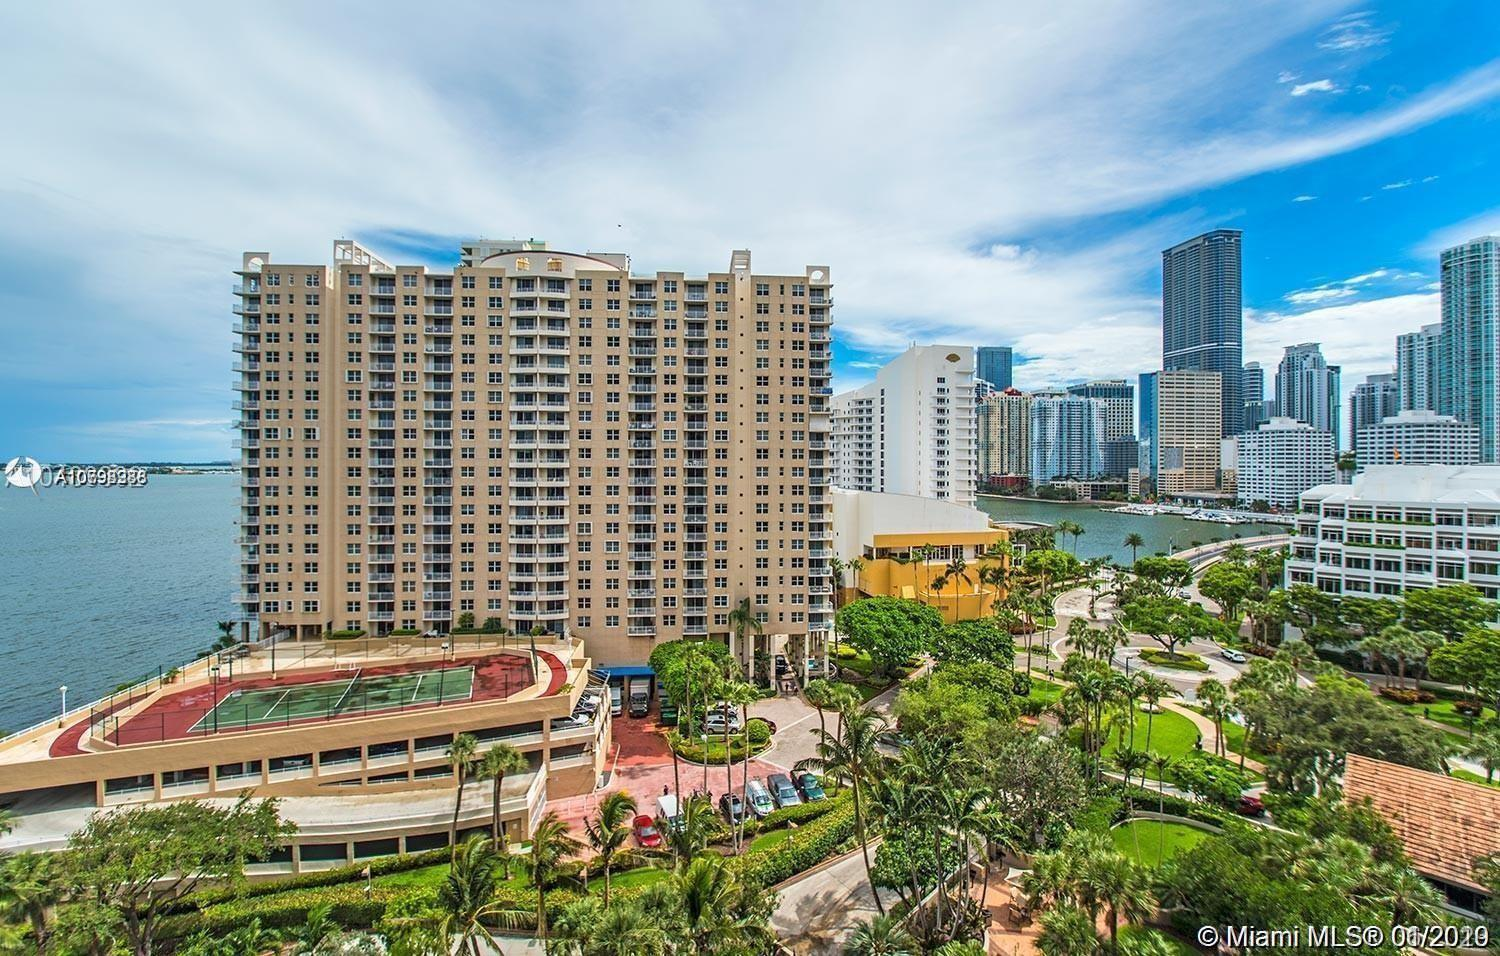 Best PRICE 2-2 unit in Brickell key I, this building is a classic and well maintained building for p